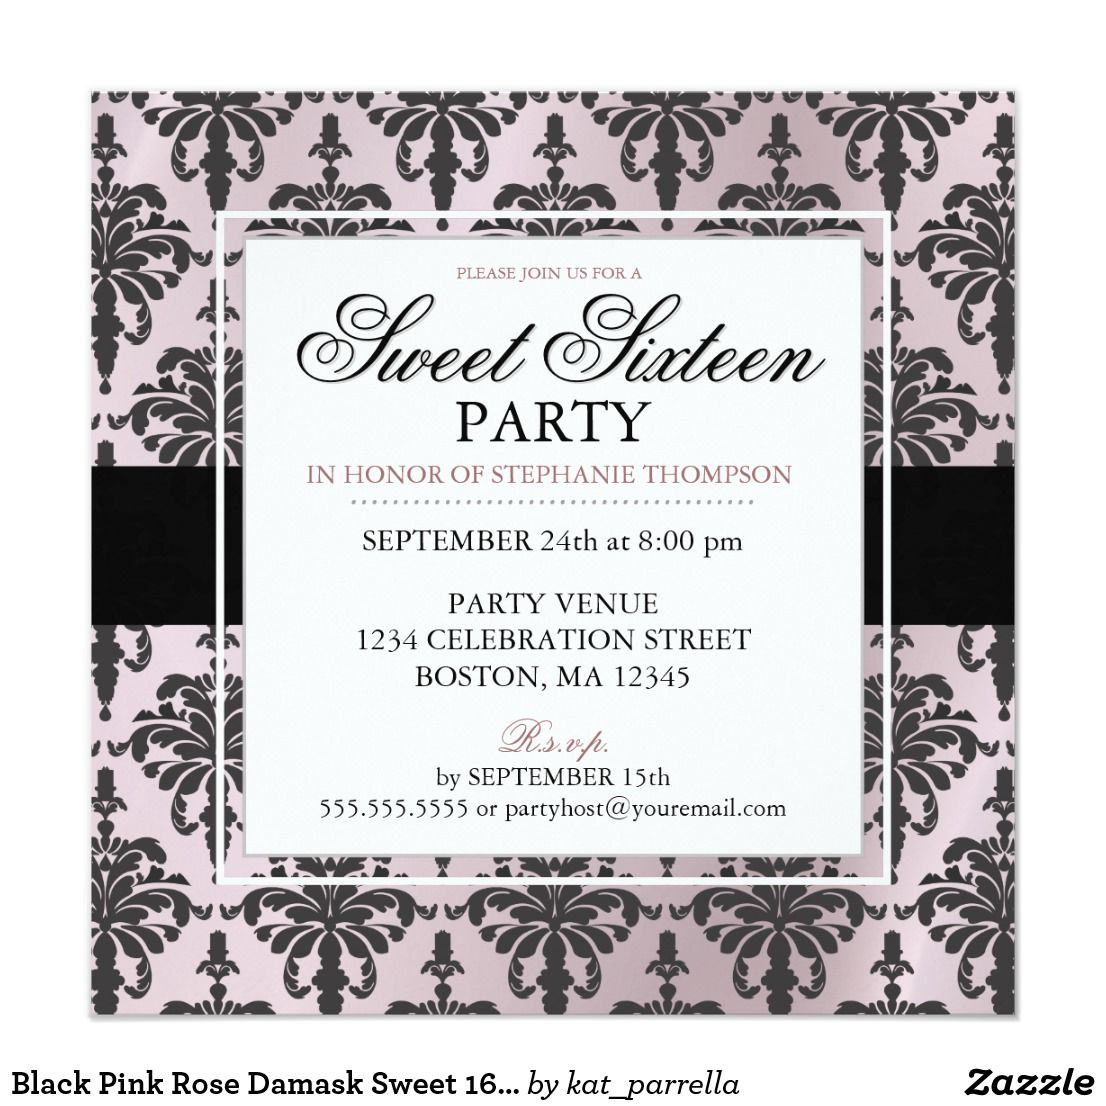 Black Pink Rose Damask Sweet 16 Party Invitations